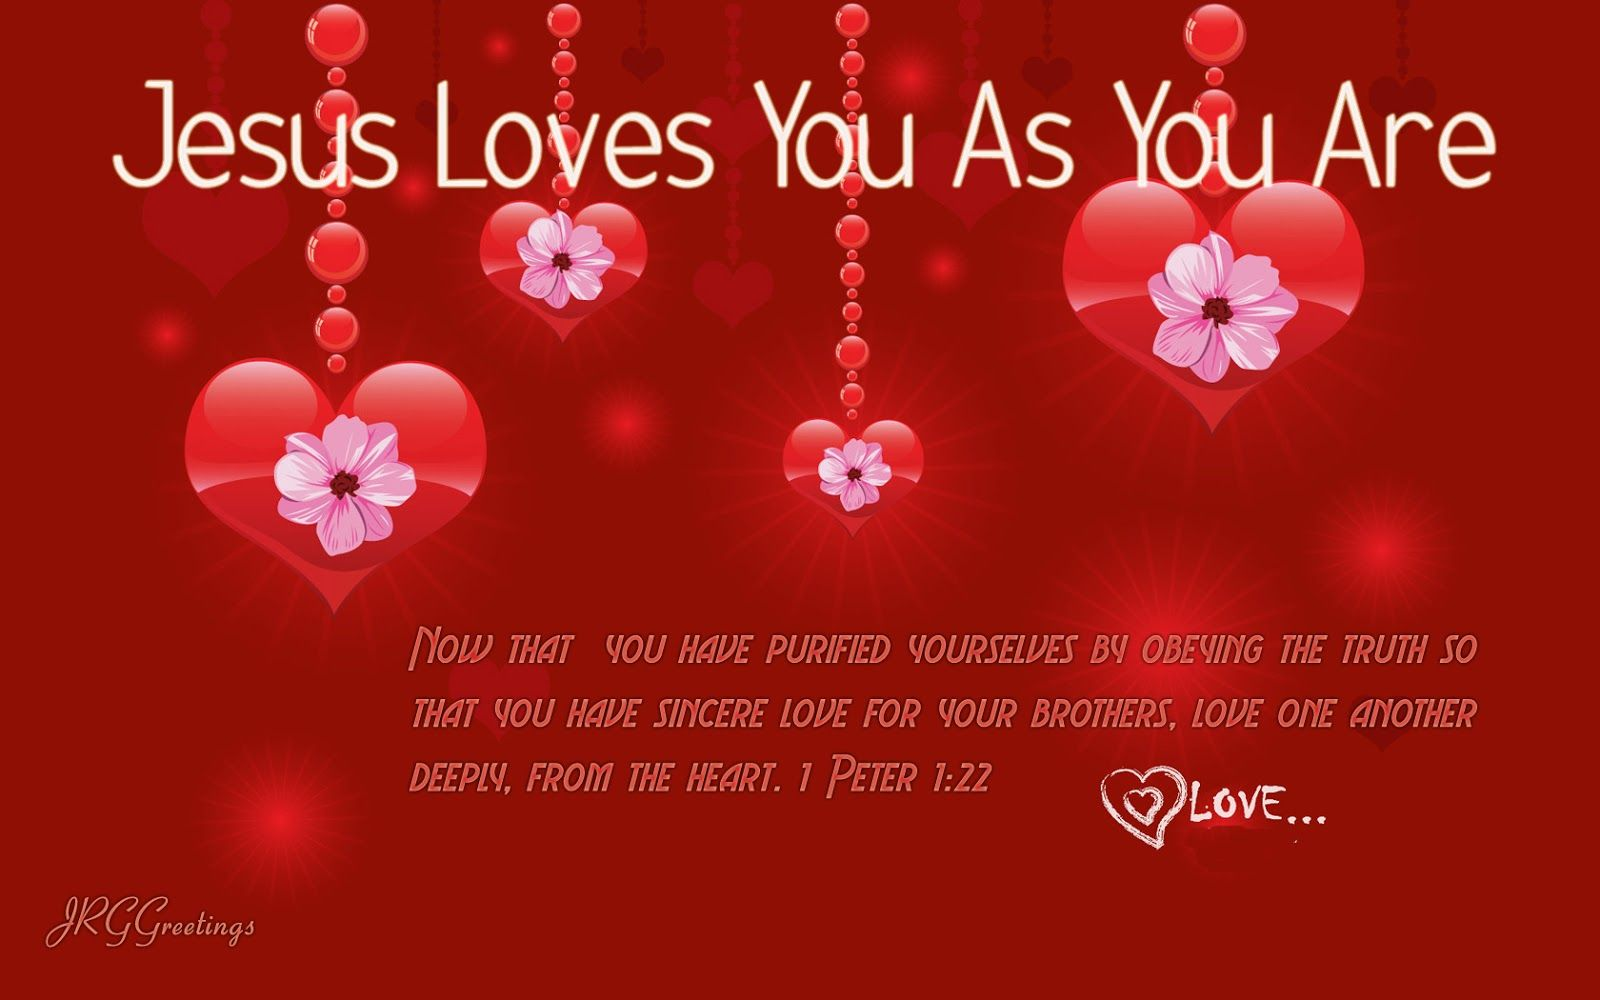 Download HD Christmas Bible Verse Greetings Card Wallpapers Free – Christian Valentine Cards for Kids